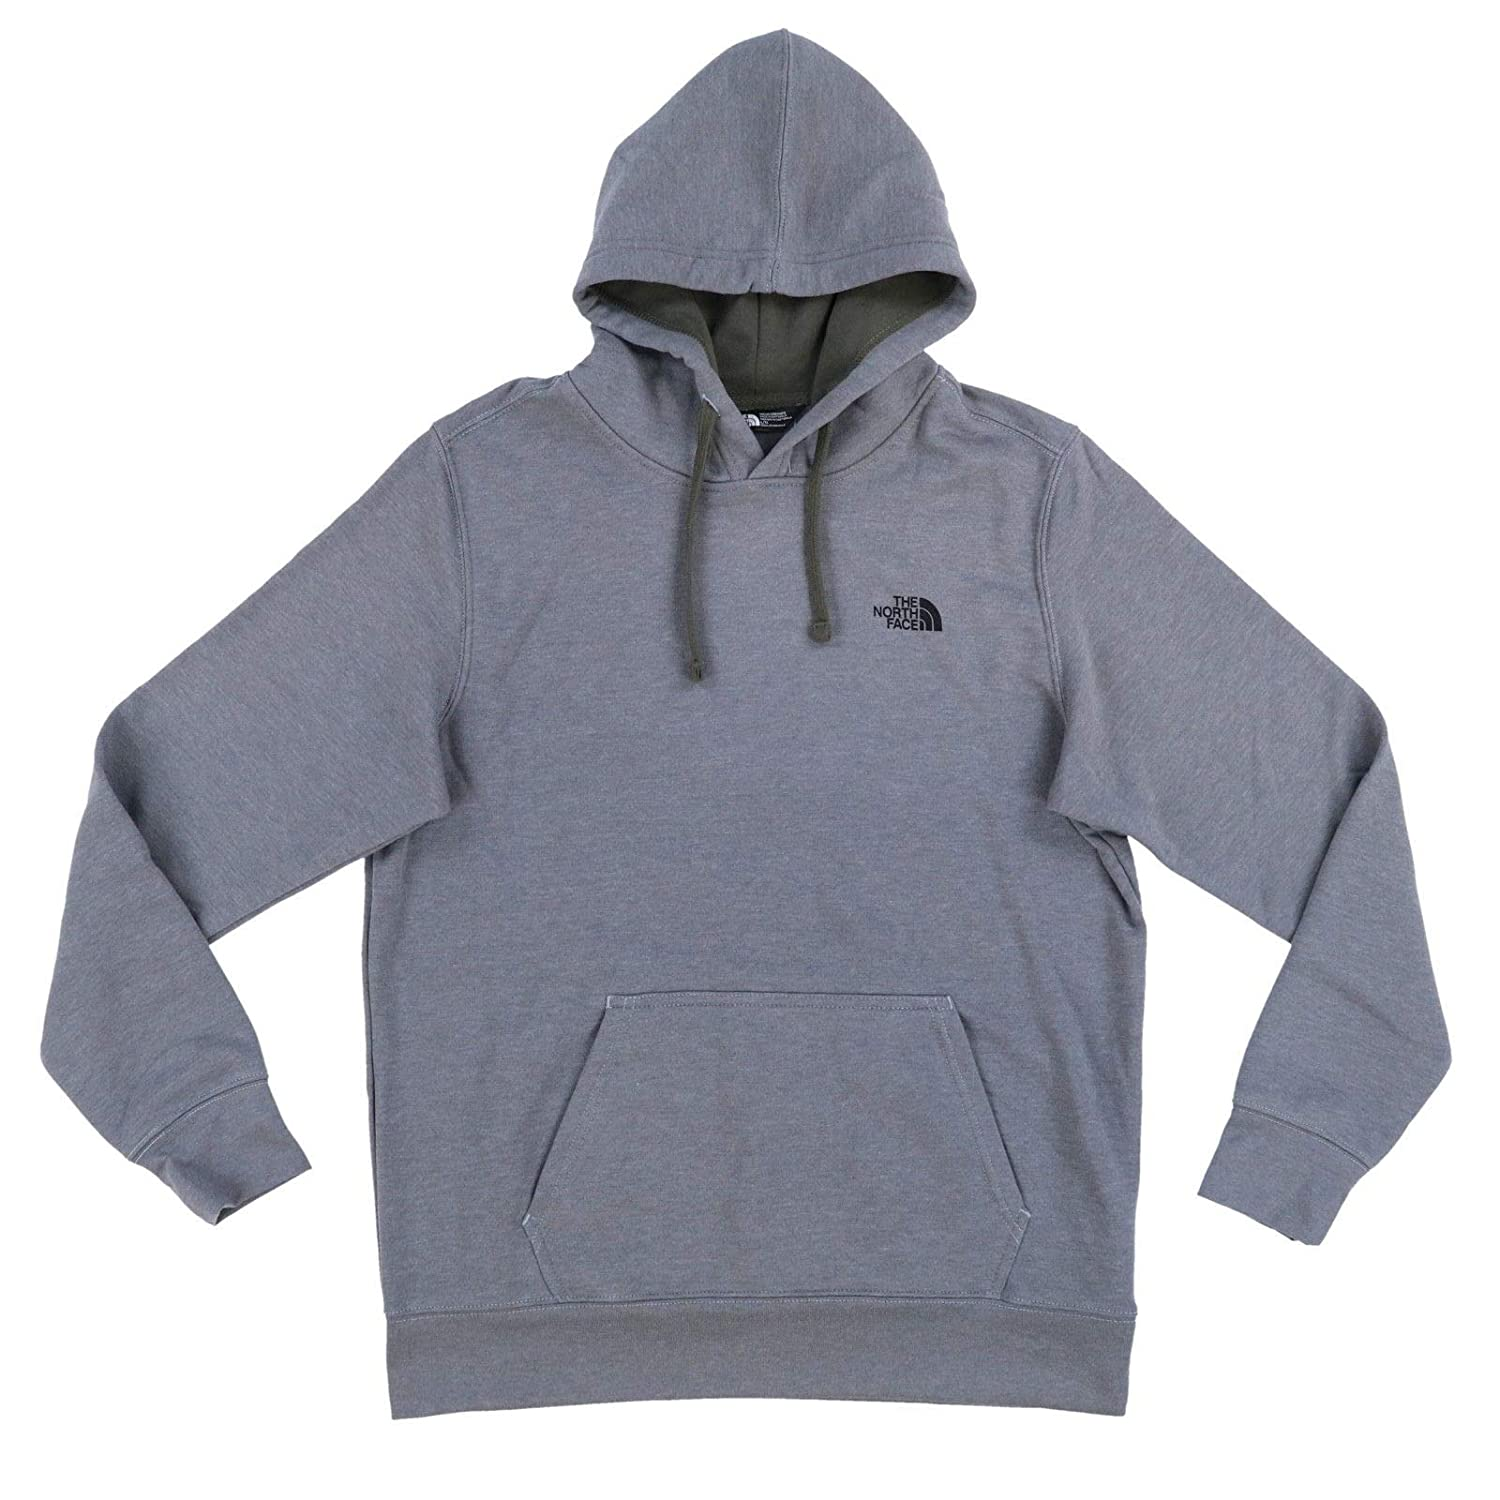 3222812bb The North Face Men's 80/20 Throuback Hoodie Athletic Pullover at ...